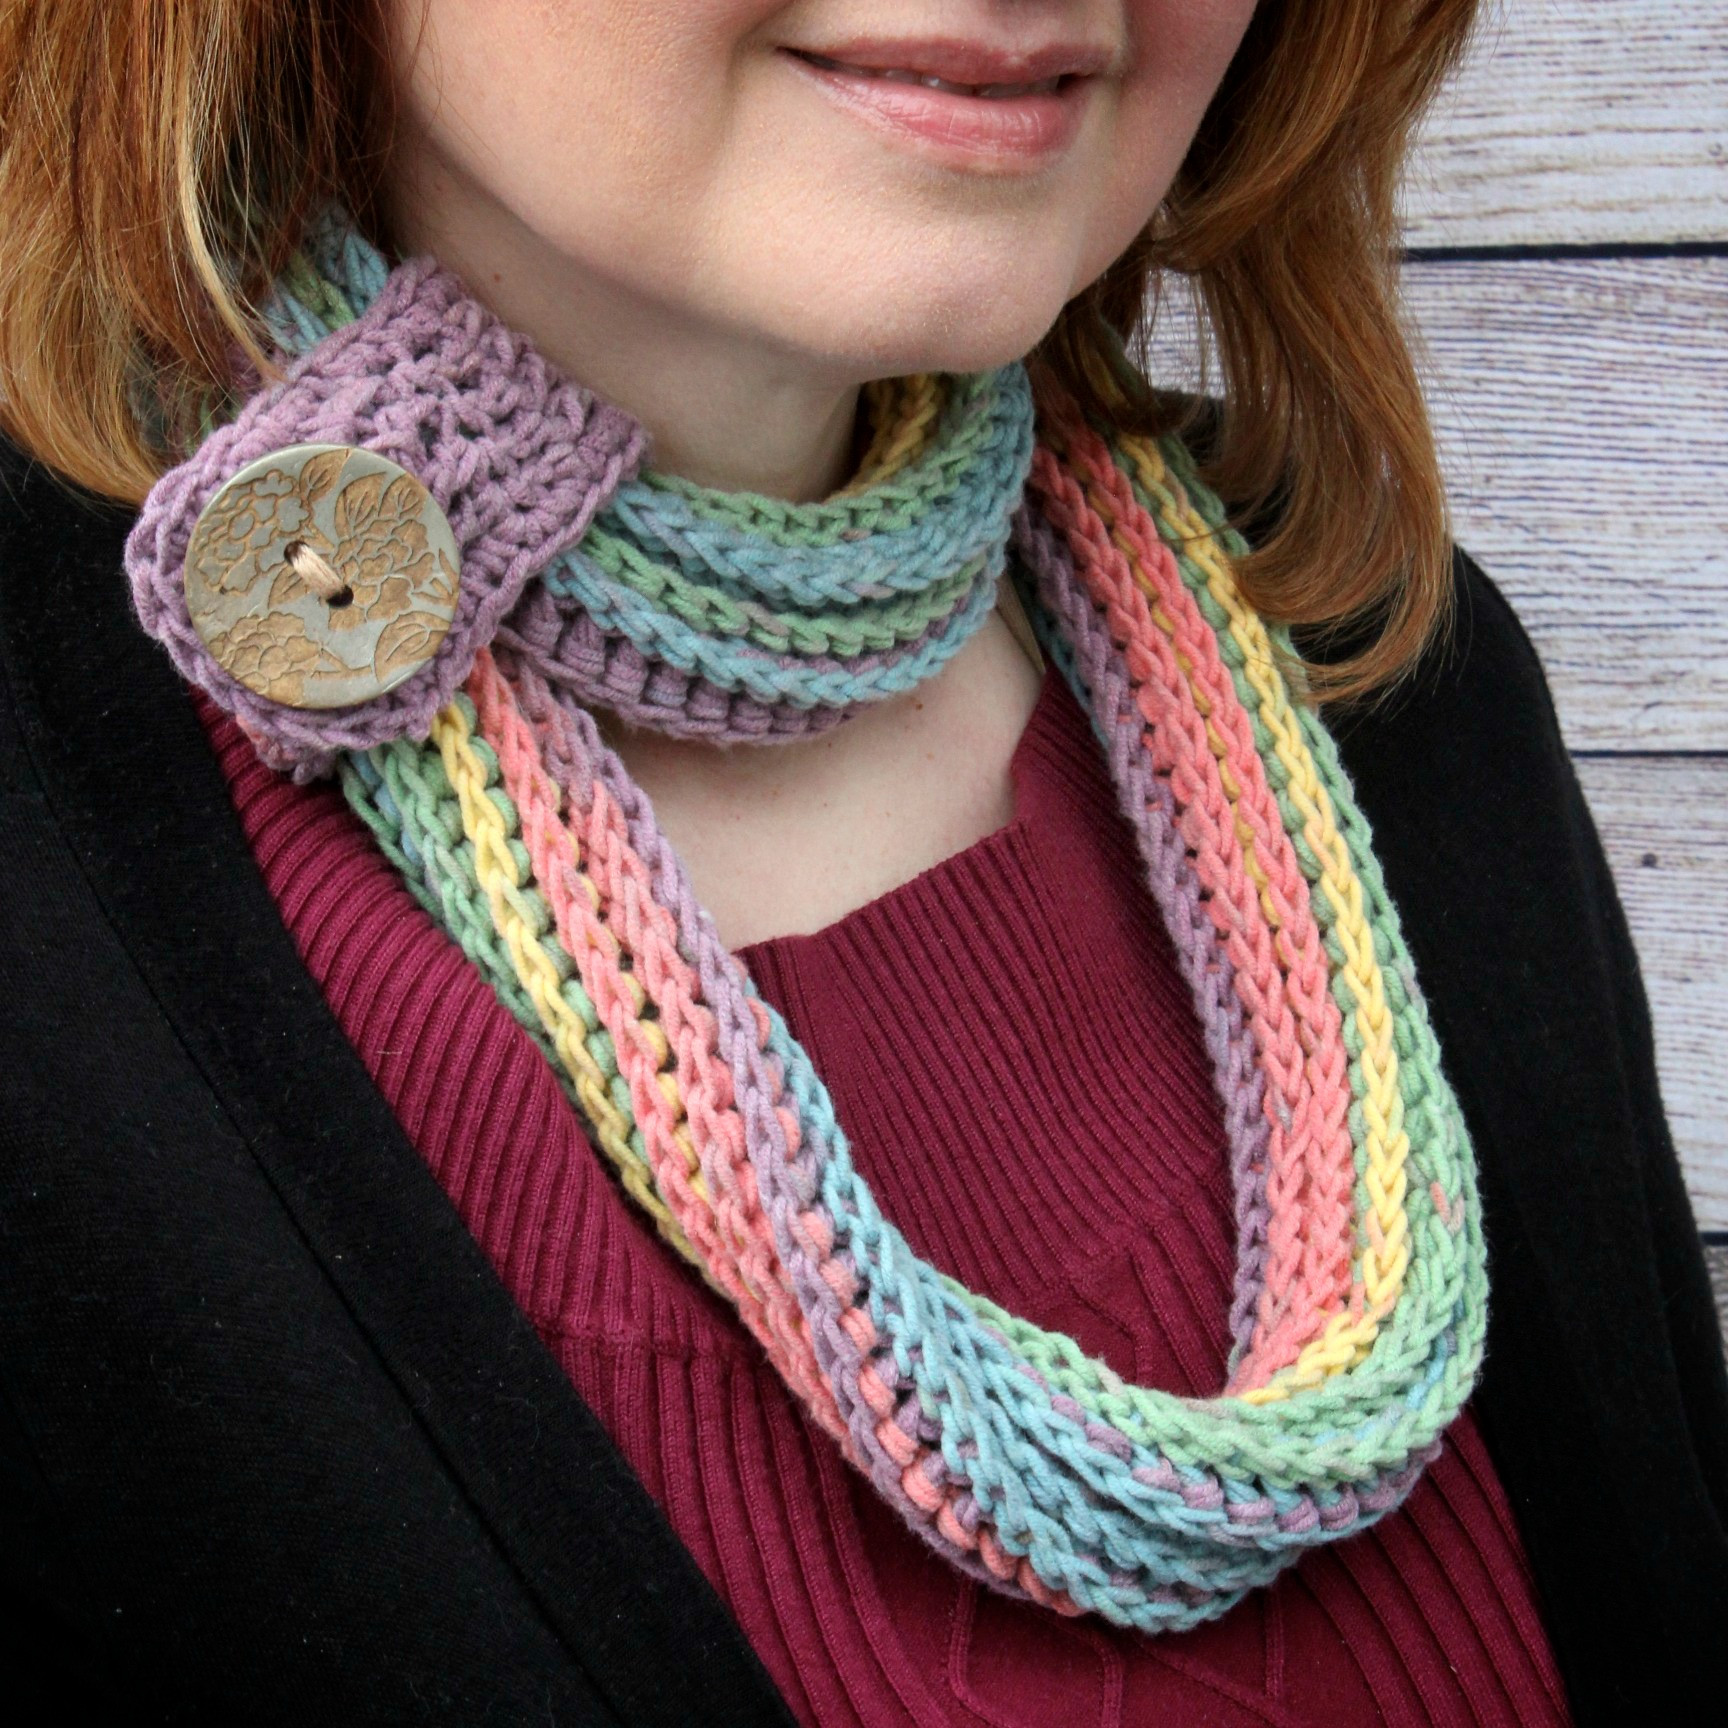 Best Of Coiling Colors Cowl Free Crochet Pattern Featuring Caron Caron Cotton Cakes Patterns Of Beautiful 45 Images Caron Cotton Cakes Patterns